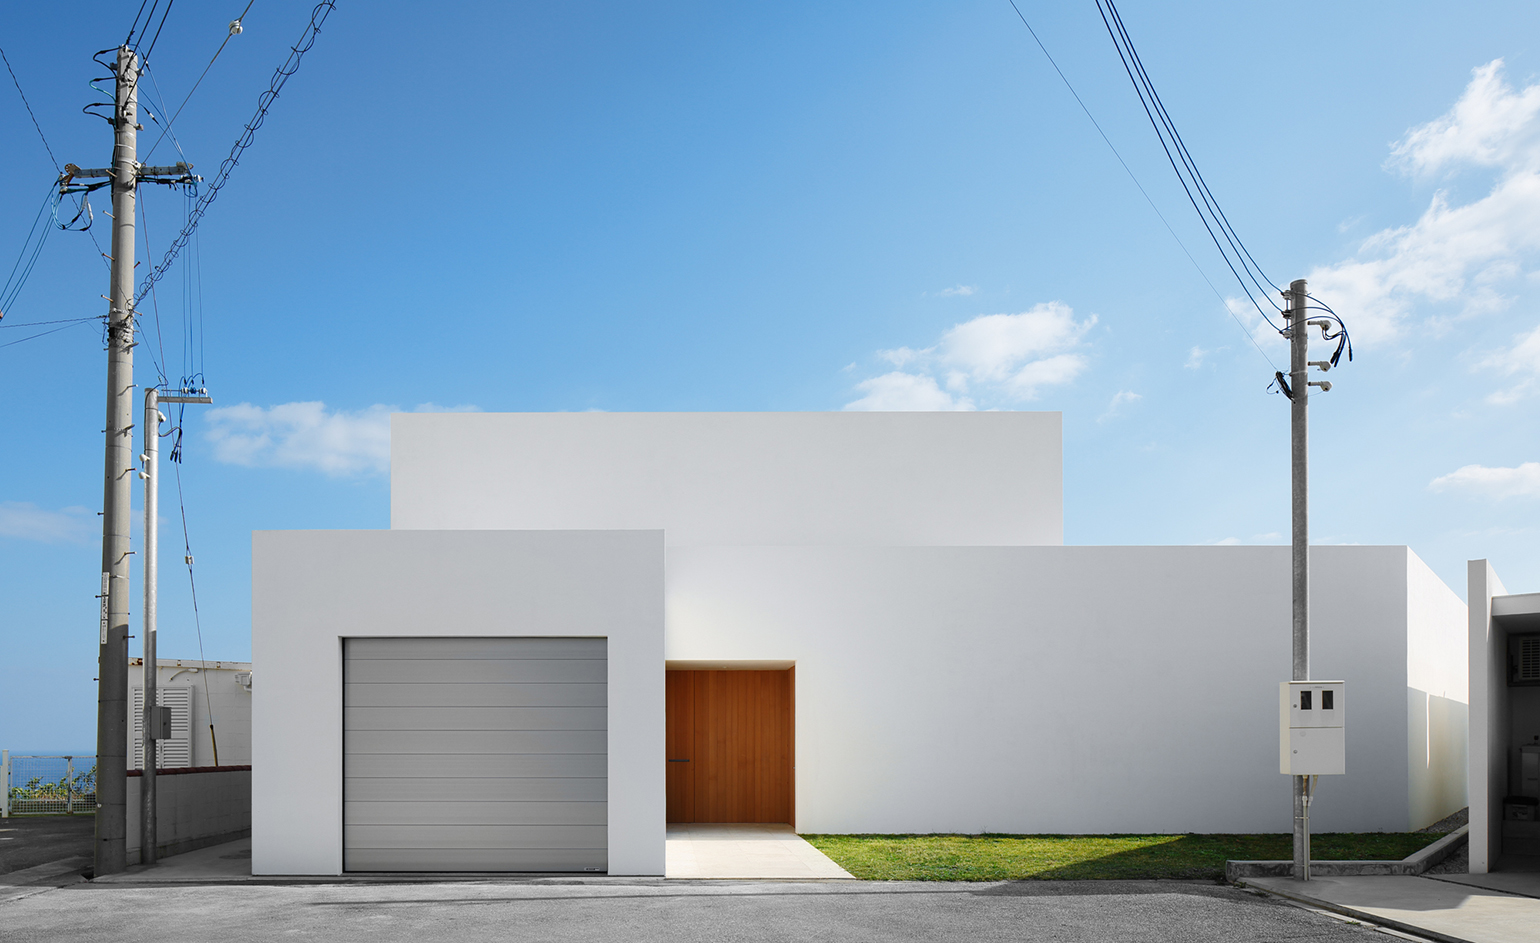 John pawson unveils minimalist japanese home in okinawa for Japanese minimalist small house design